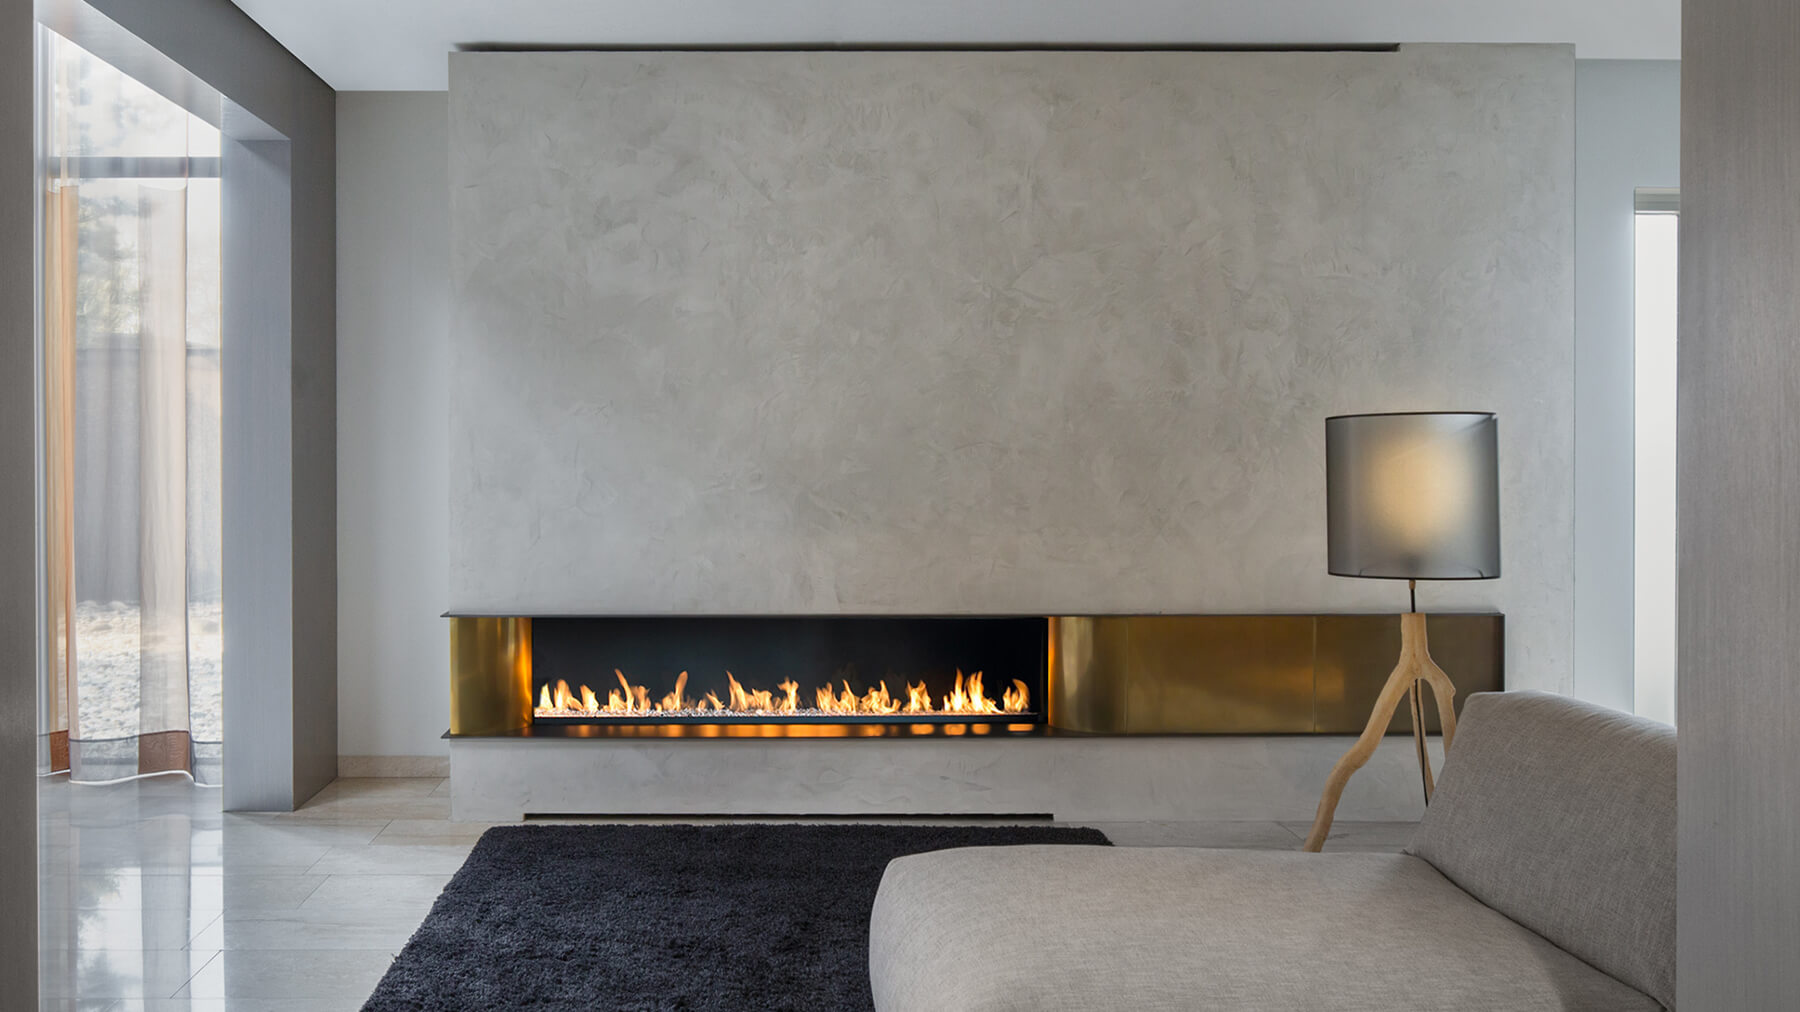 Marvelous Deisgn Of The Living Room With Blak Rugs And Grey Wall Added With Modern Gas Fireplace